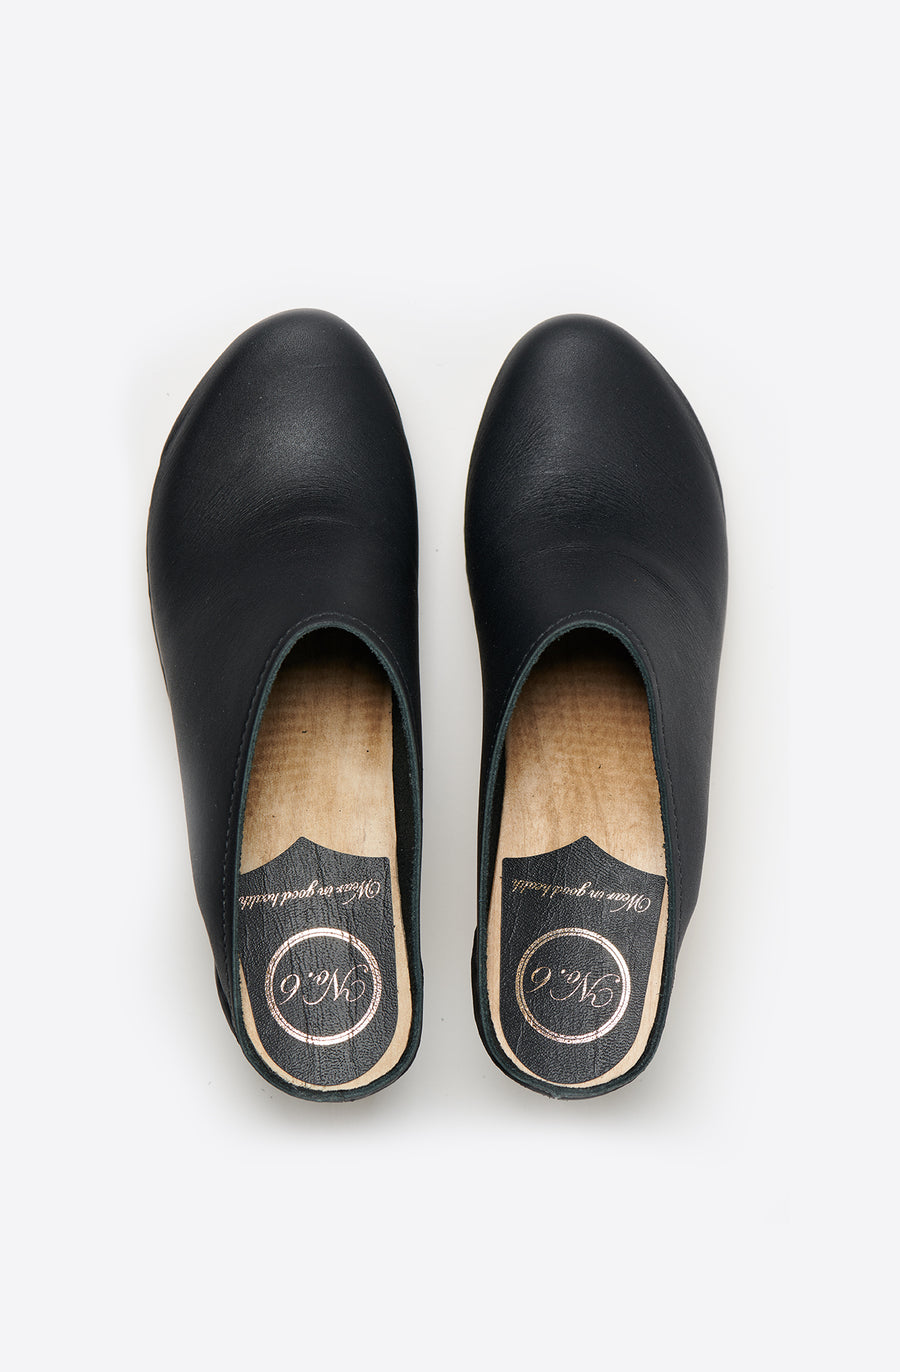 New School Wedge Clog-black